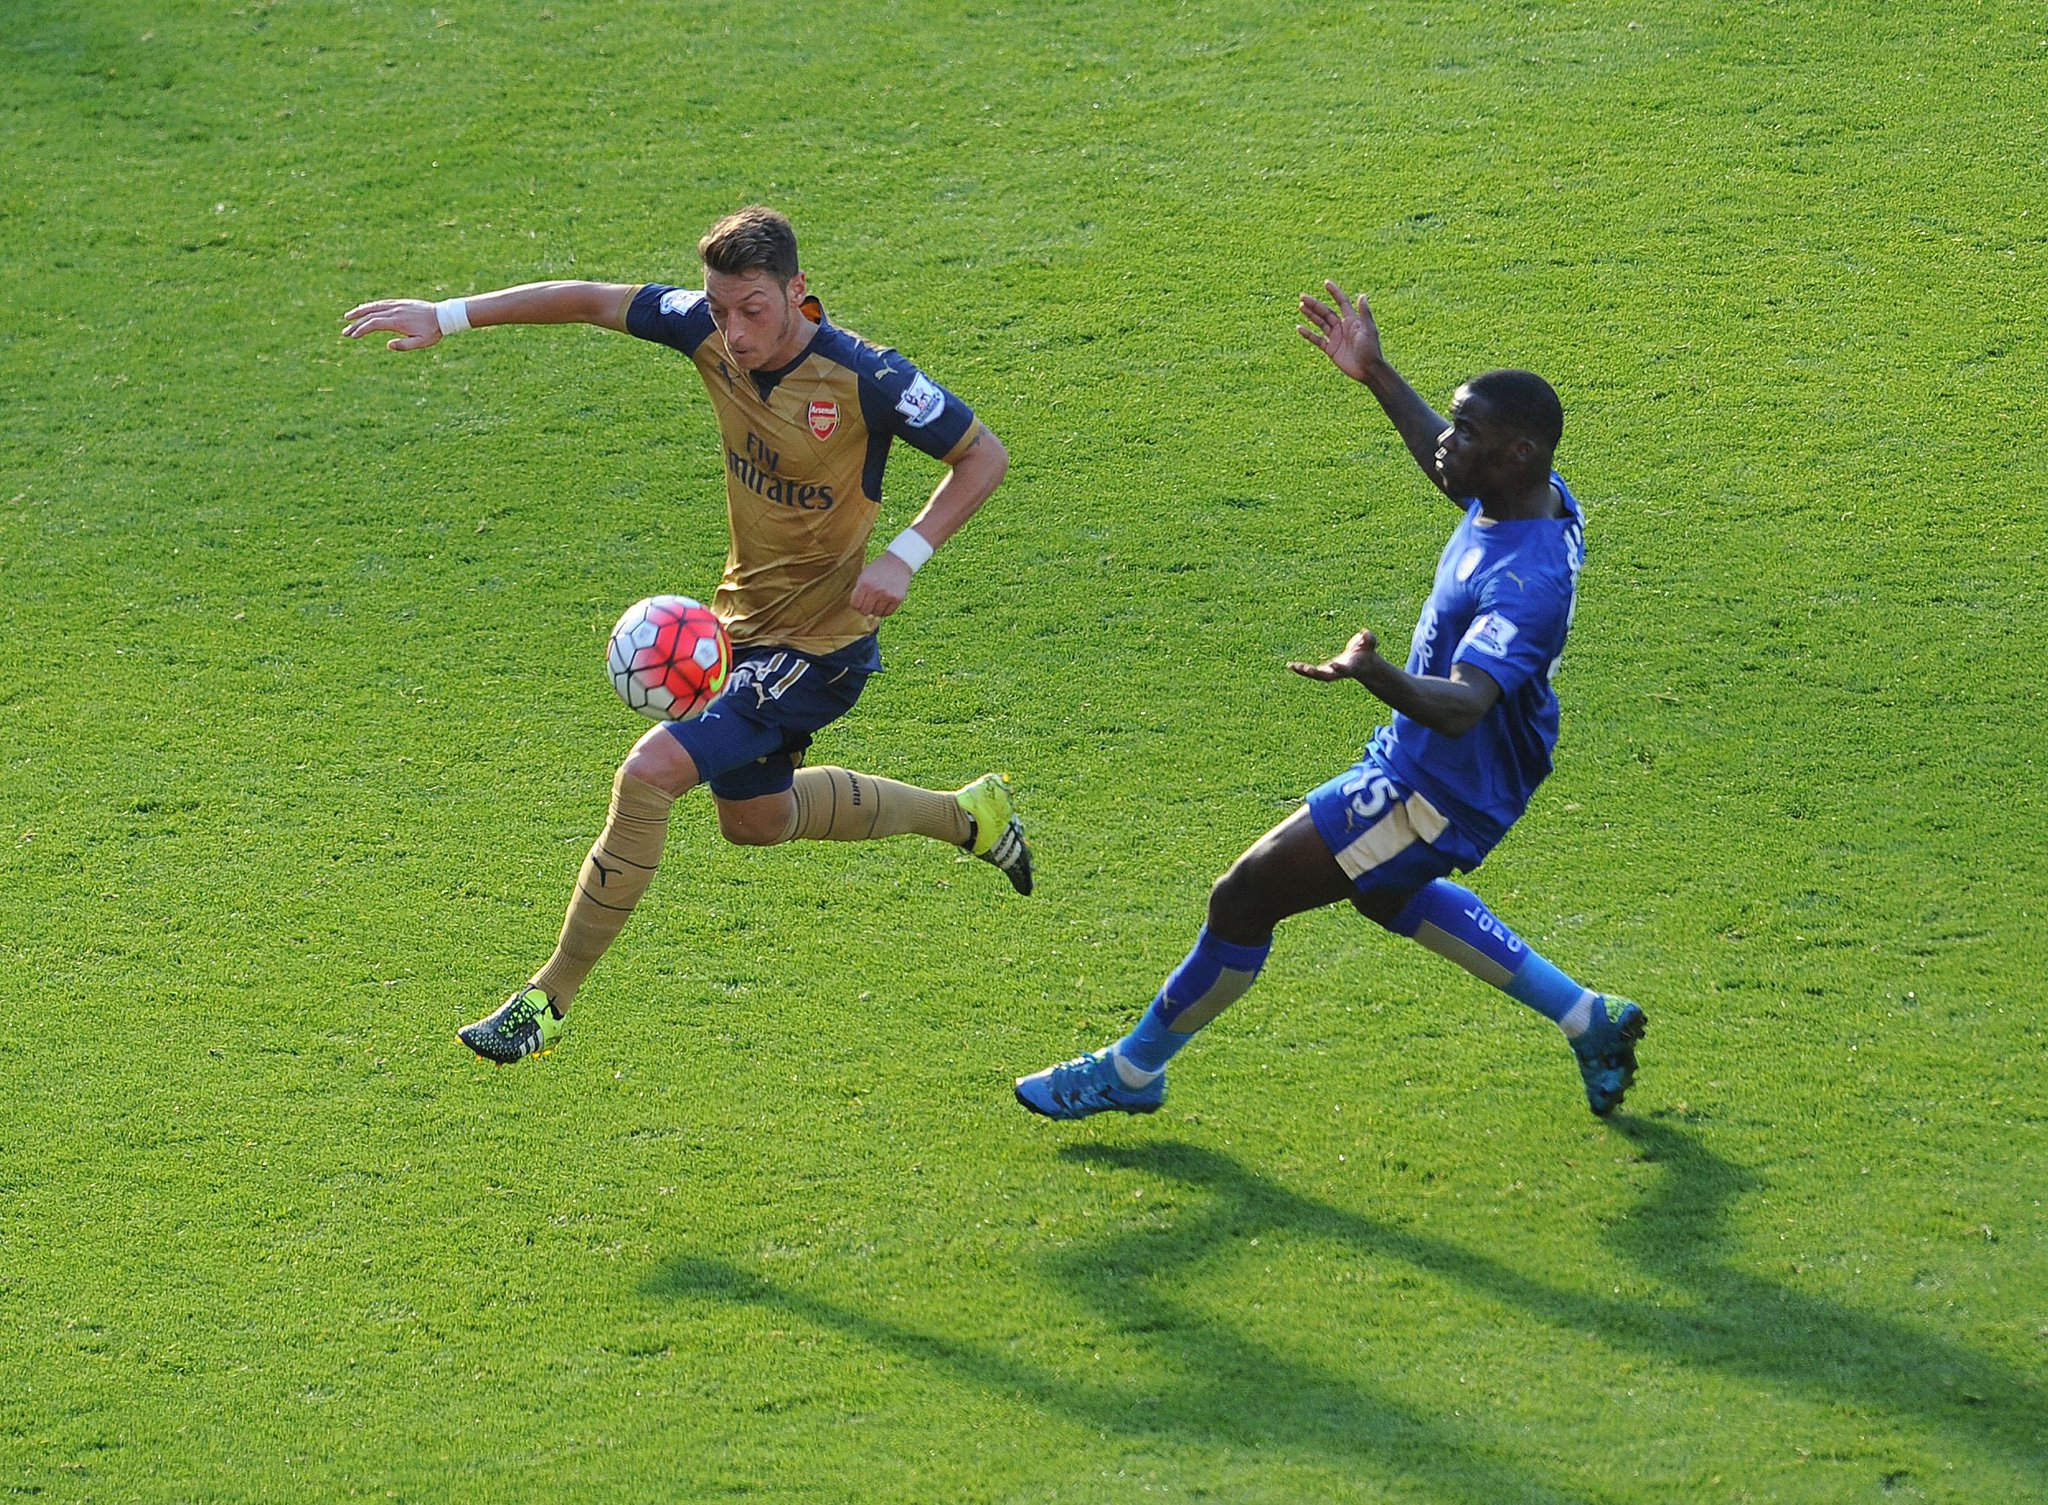 RETWEET if @MesutOzil1088 was your #LCFCvAFC man of the match http://t.co/hDcg2uF01f